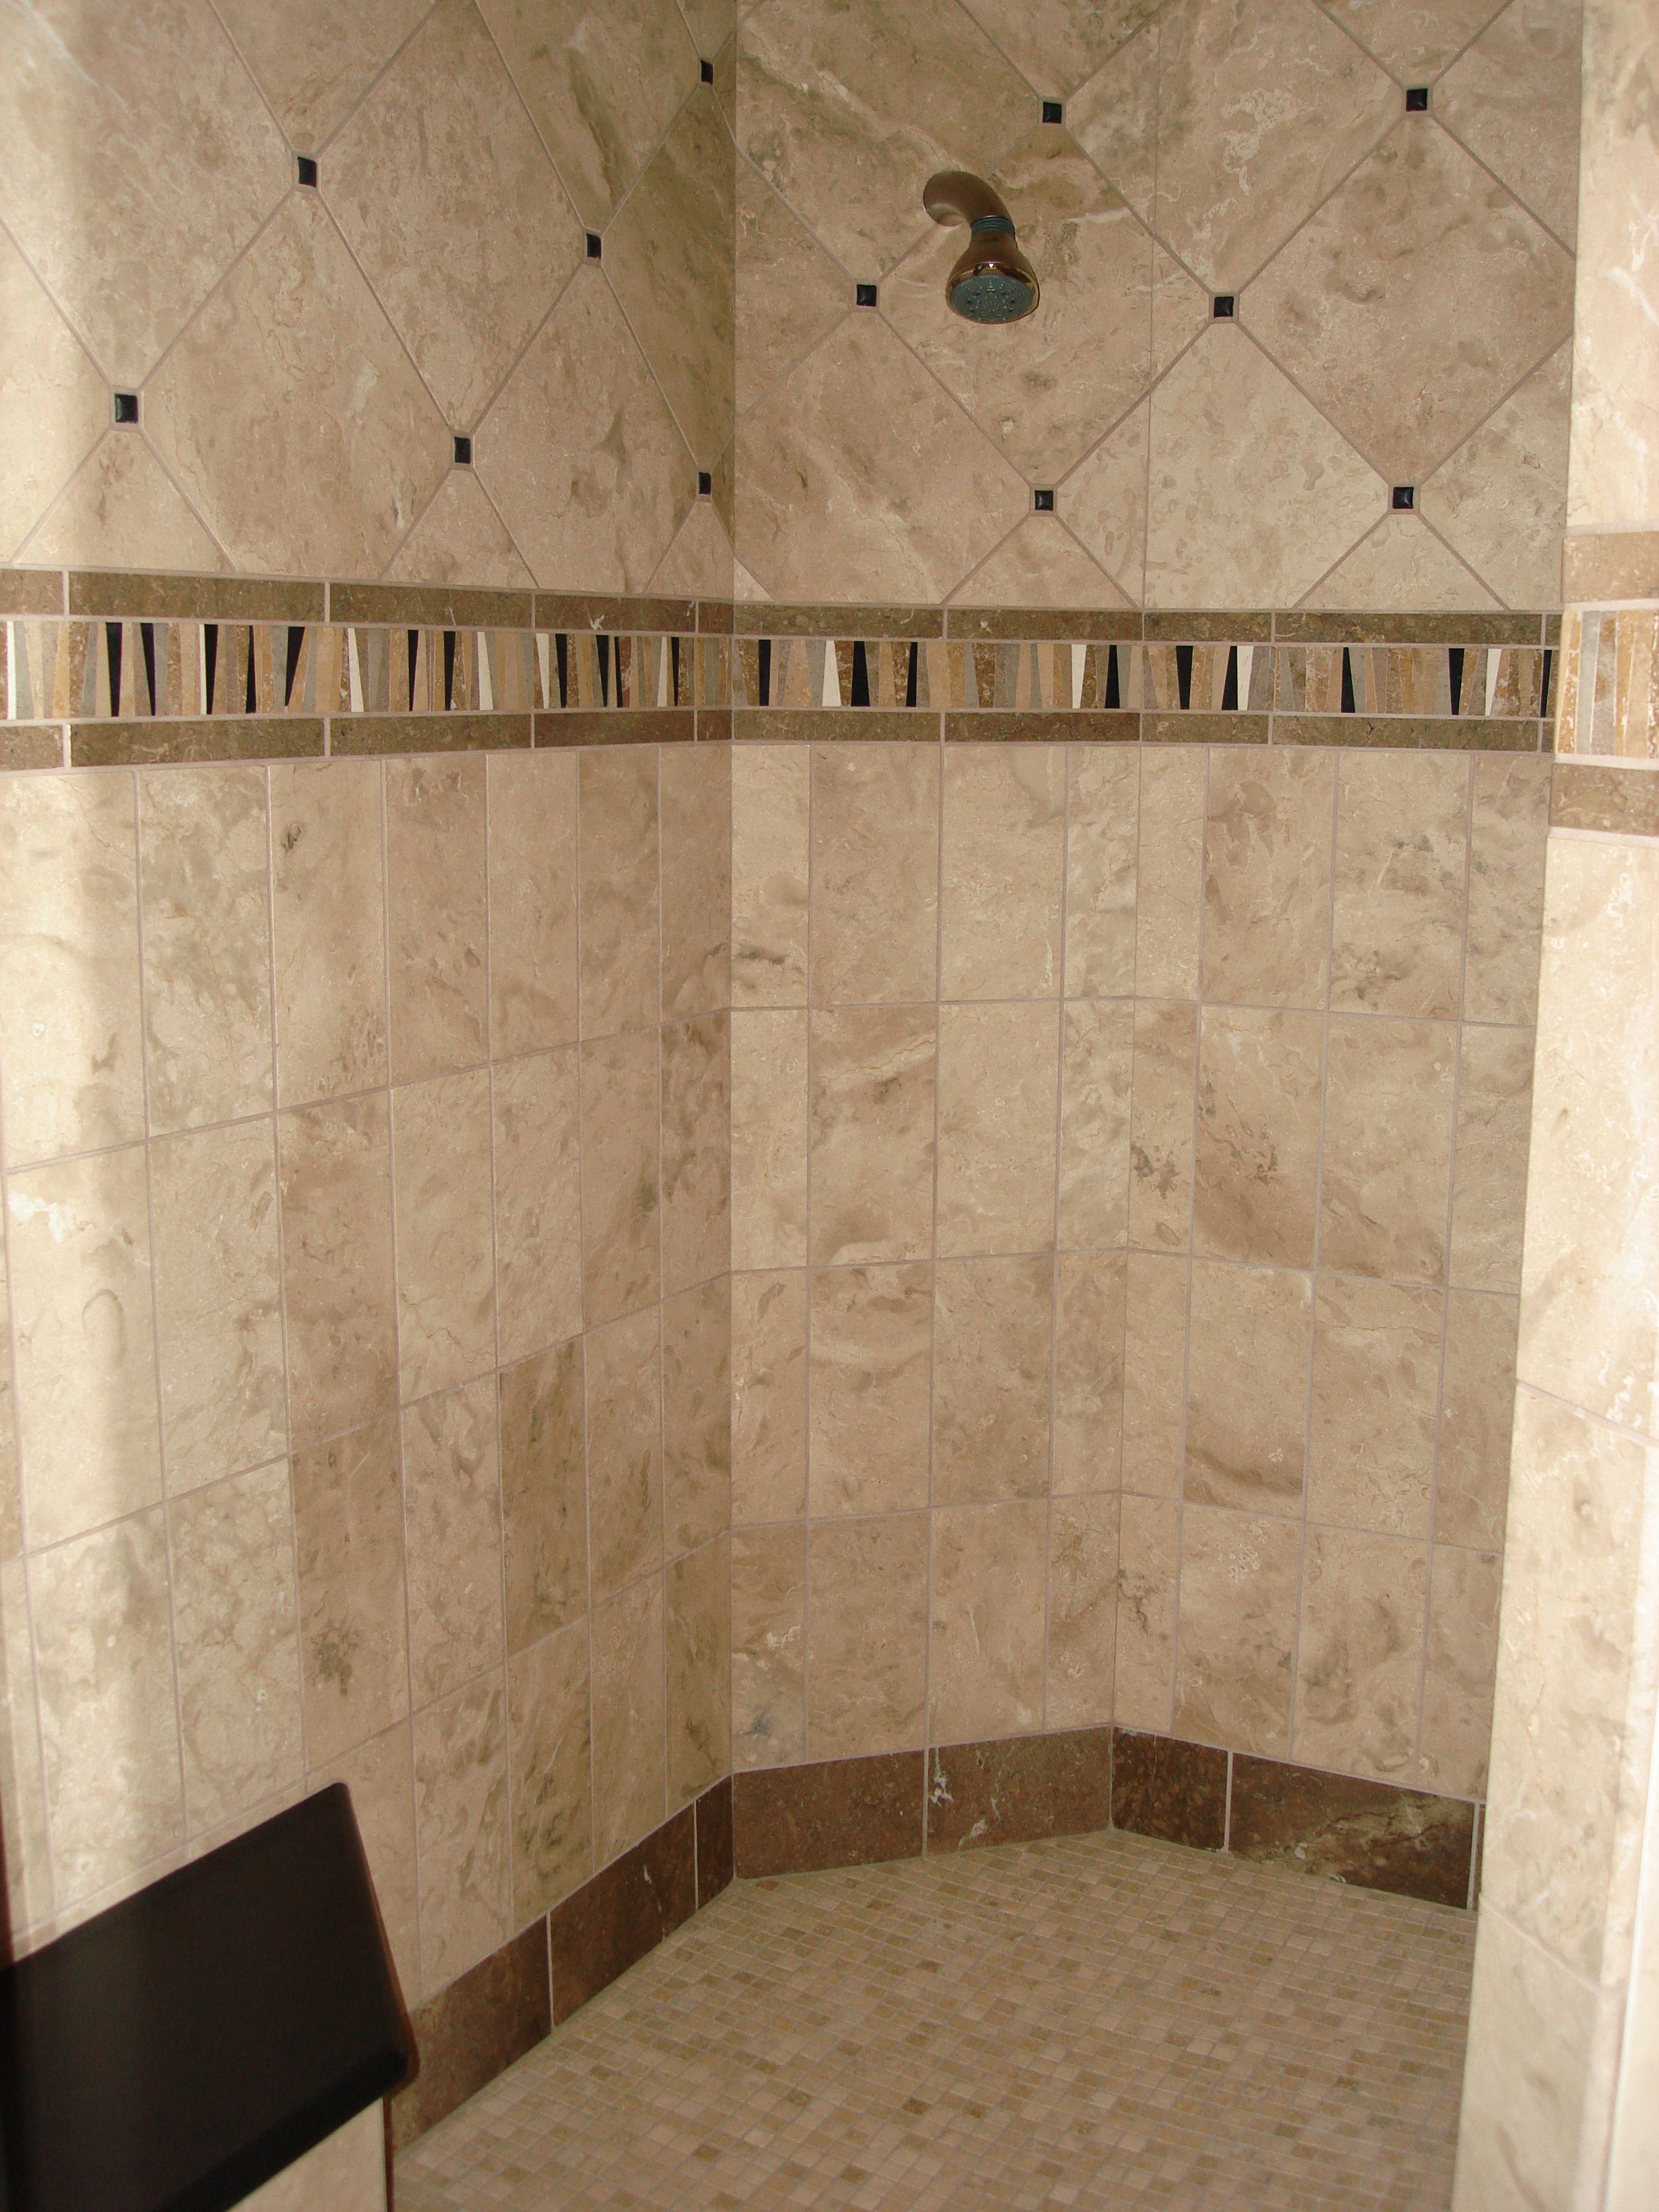 17 best images about shower tile ideas on pinterest shower tiles shower walls and tile bathrooms - Shower Tile Design Ideas